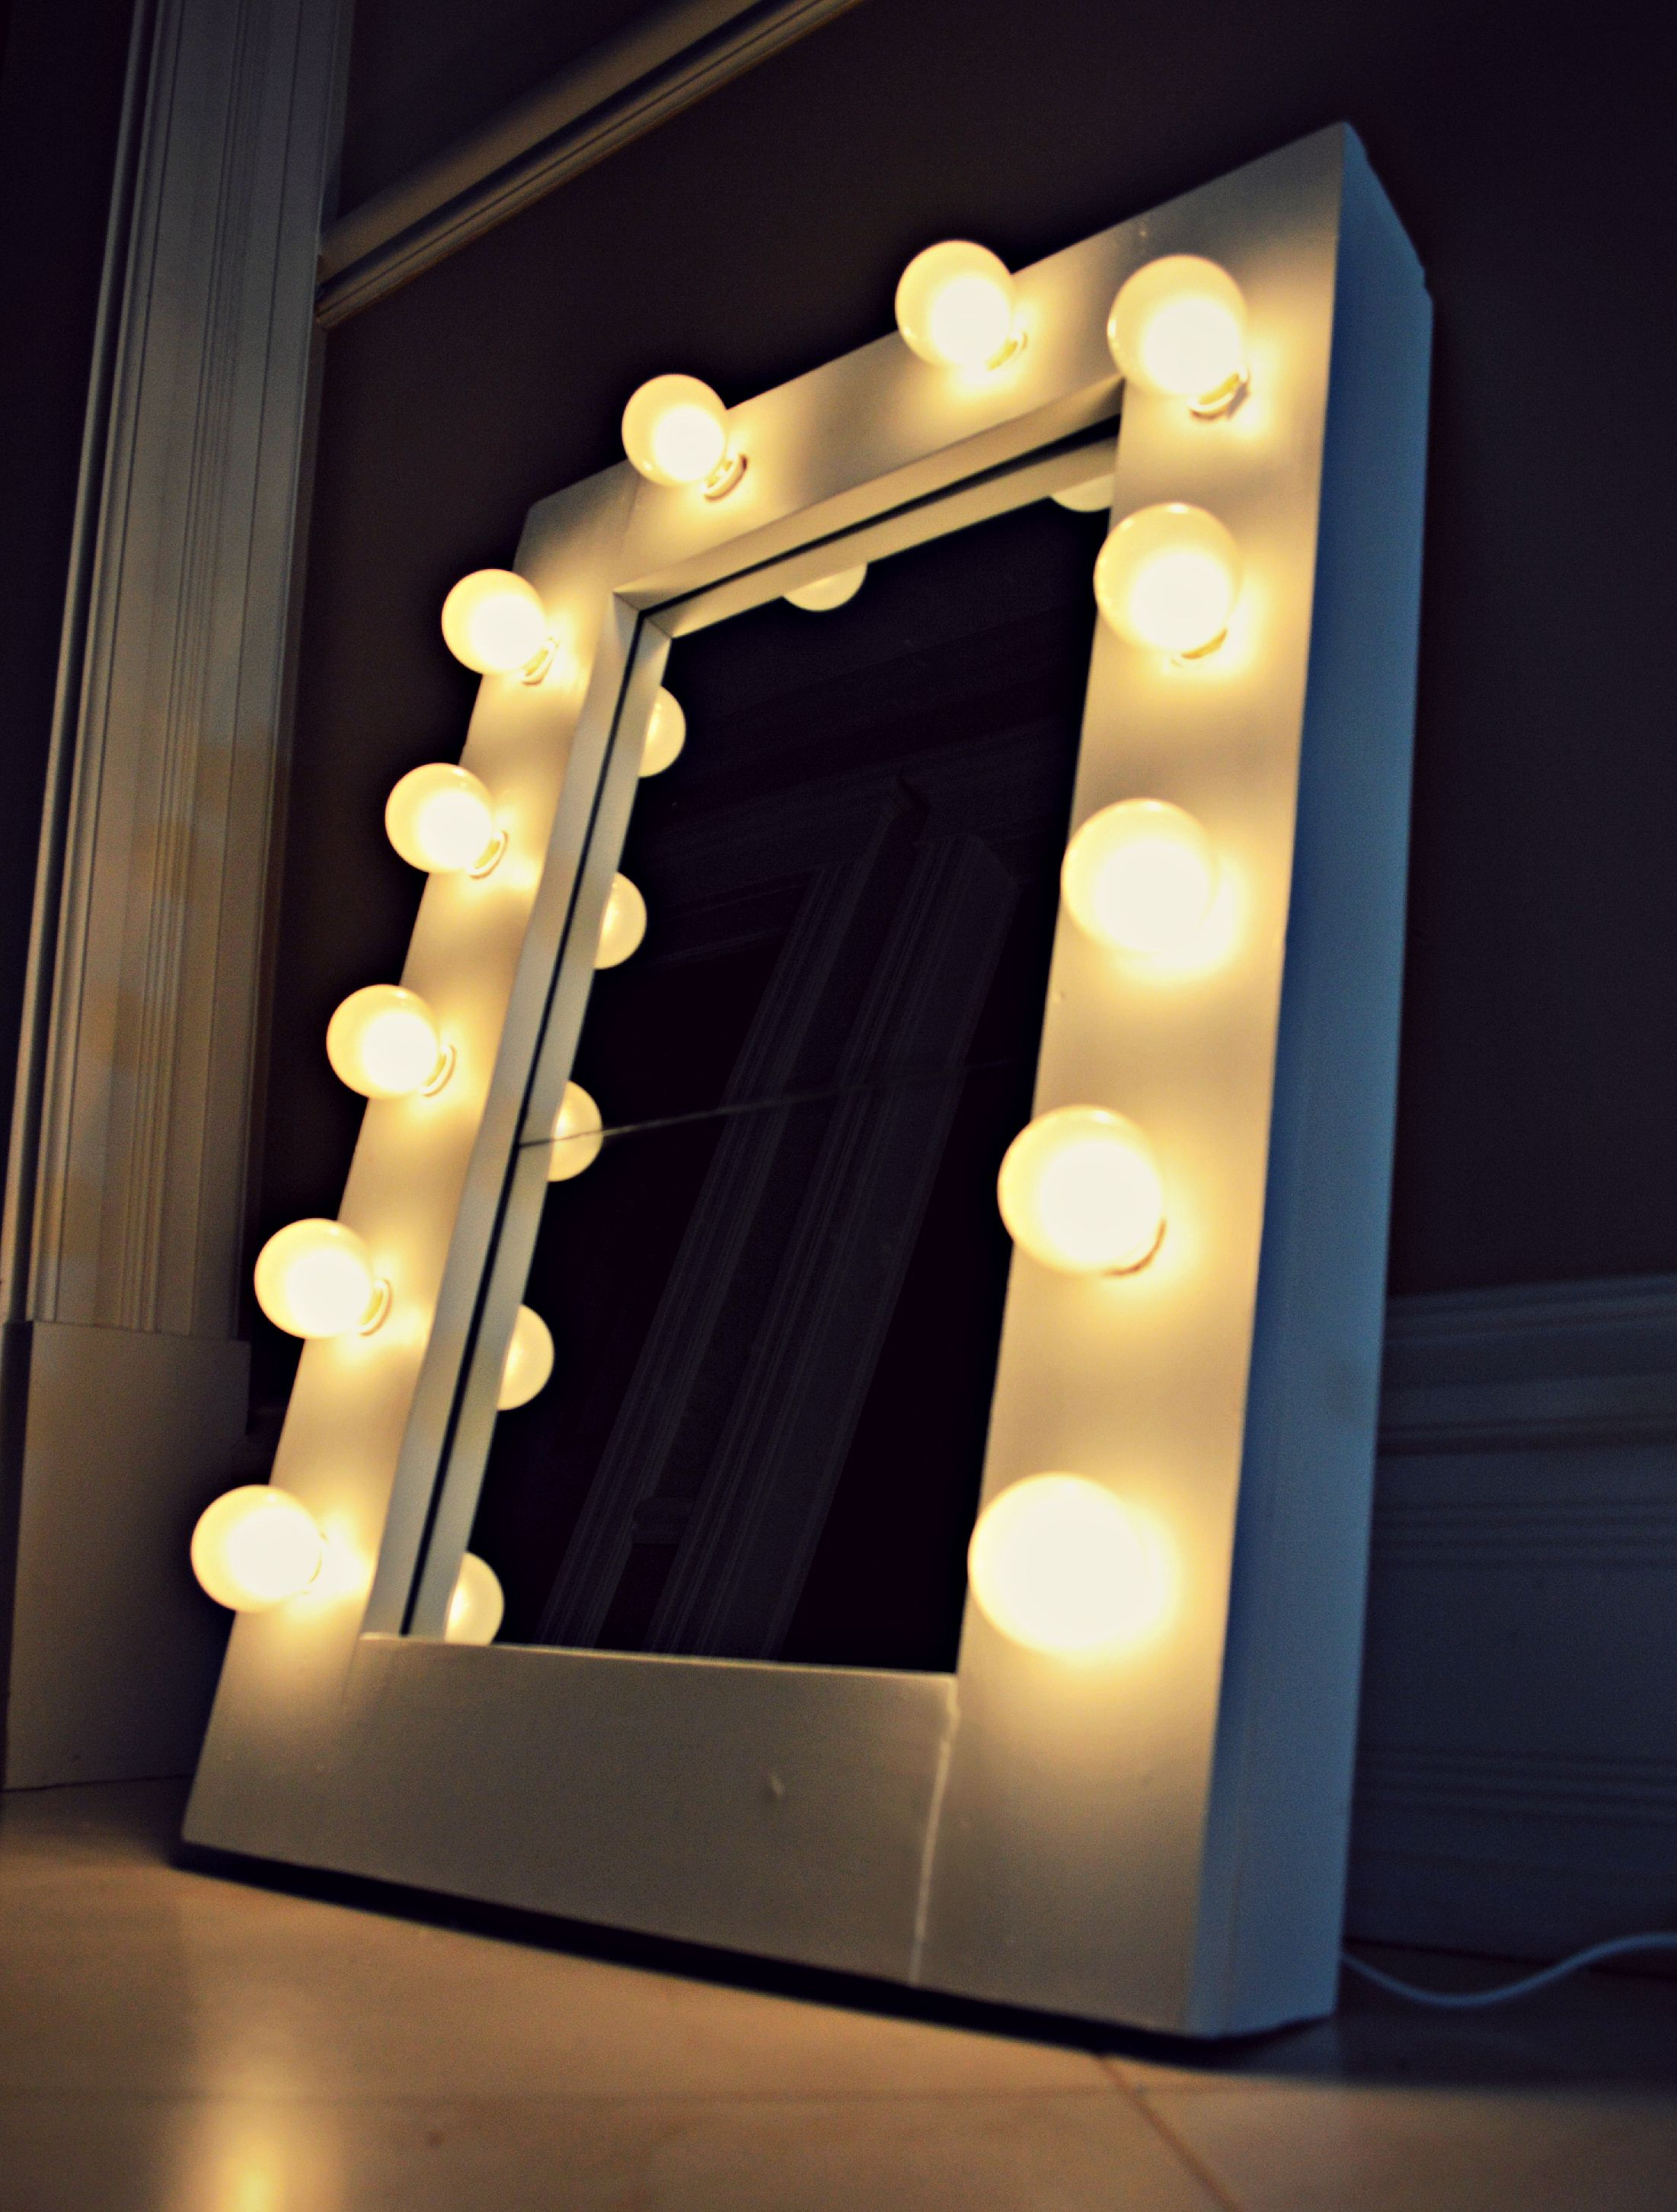 Diy Vanity Mirror With Rope Lights : DIY Vanity Mirror- Under USD 100. Materials: Pine planks, white paint (spray paint, wall paint, or ...